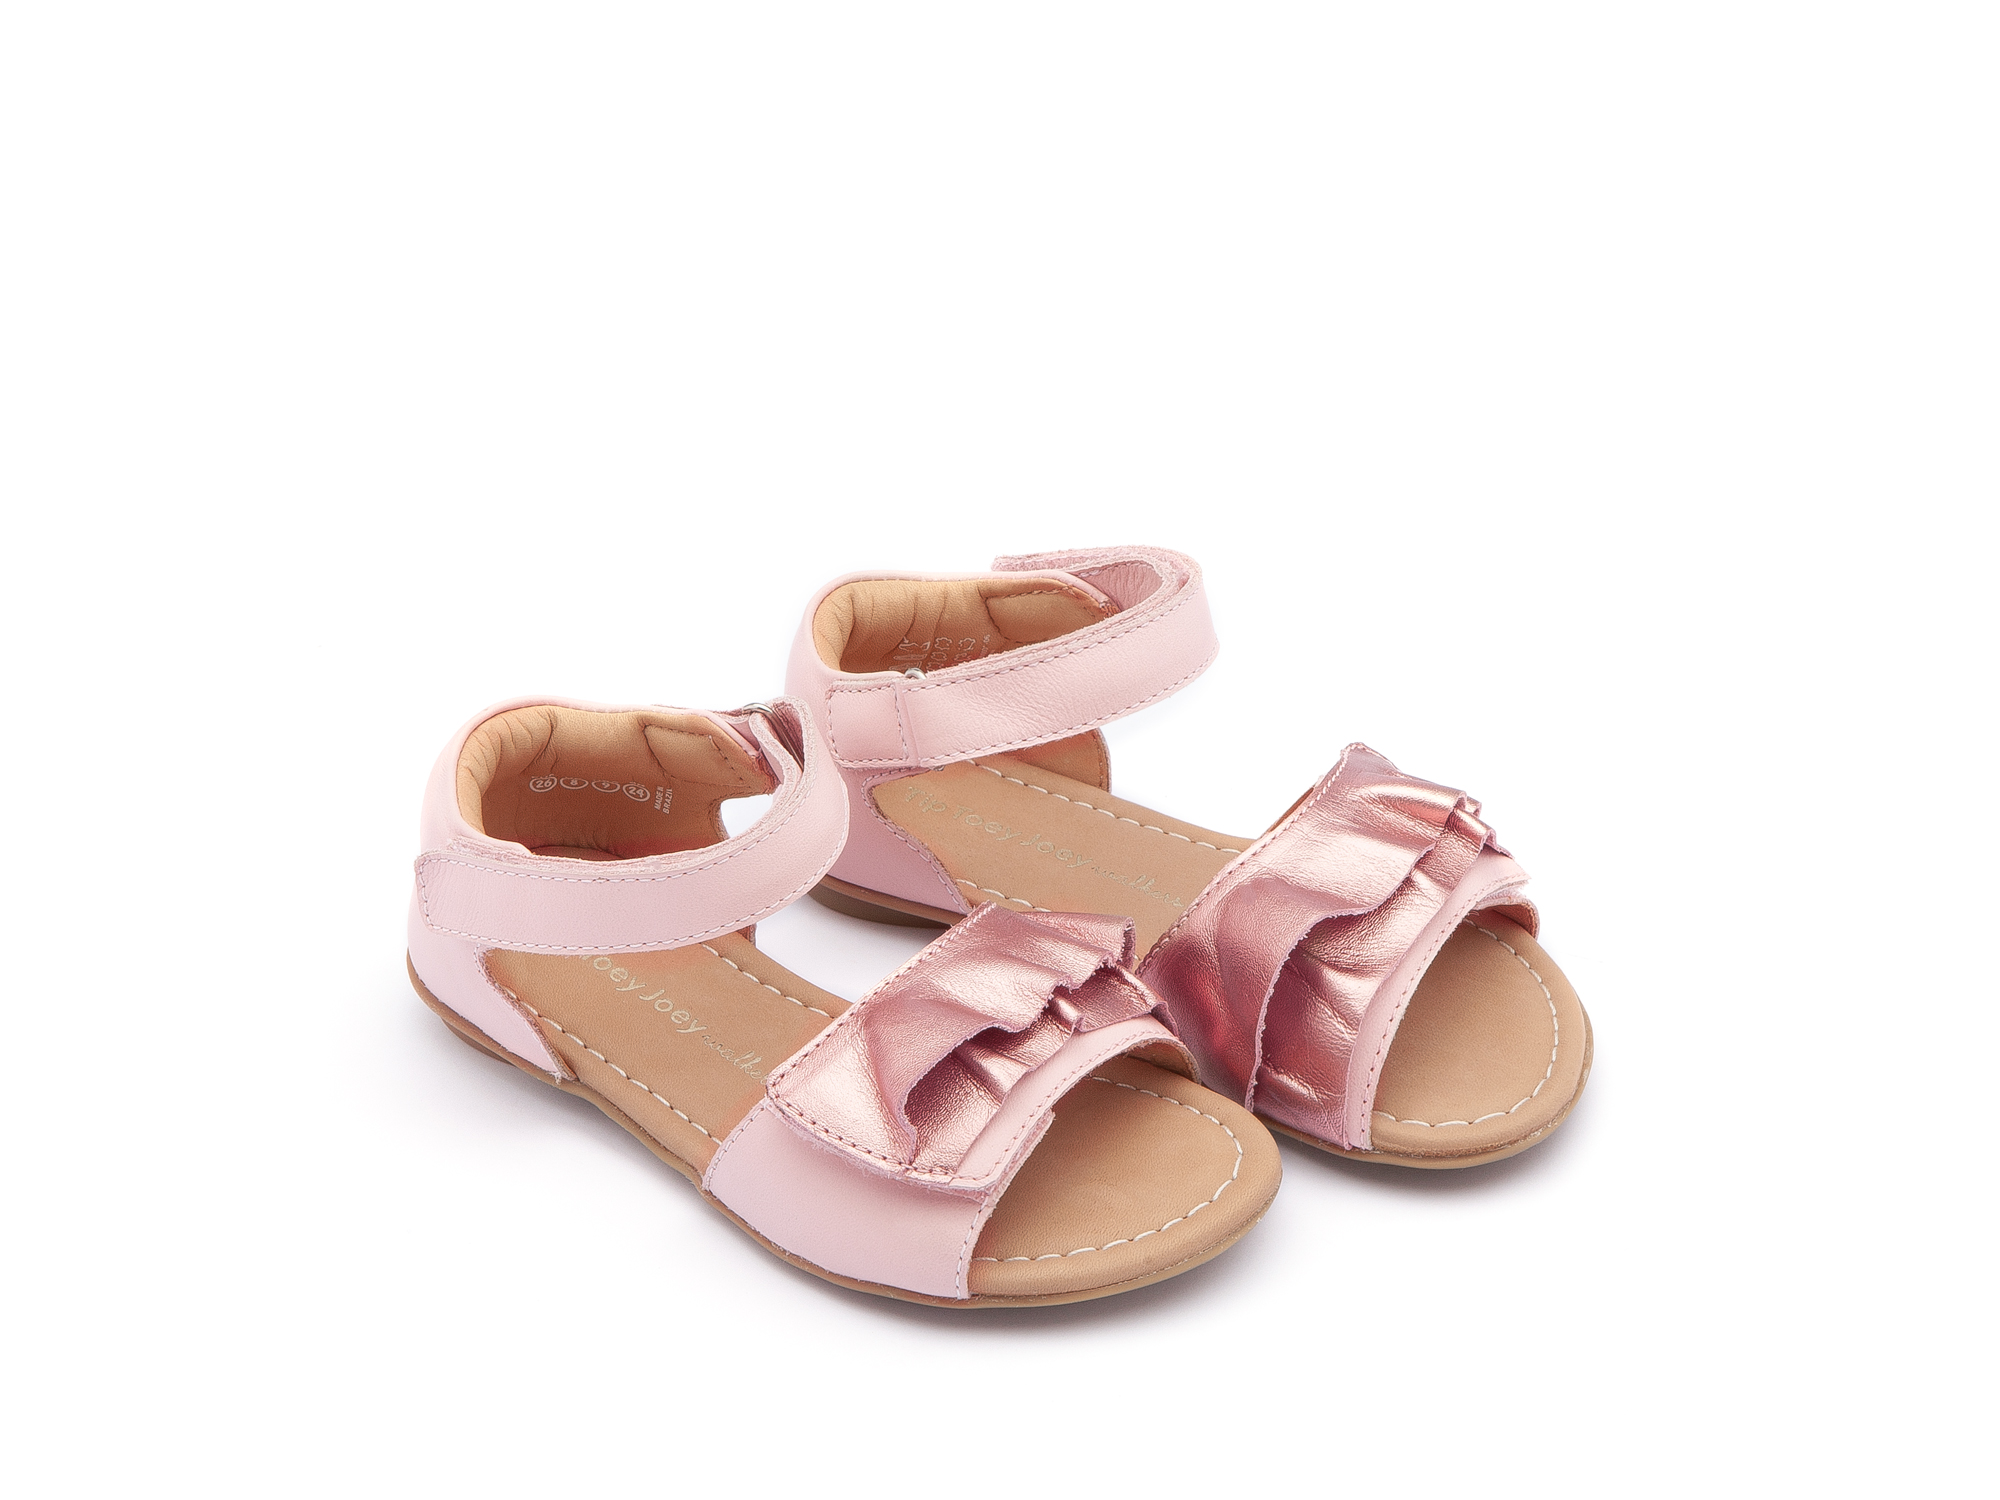 Sandália Little Wind Rose Gold/ Blossom Pink Toddler 2 à 4 anos - 0